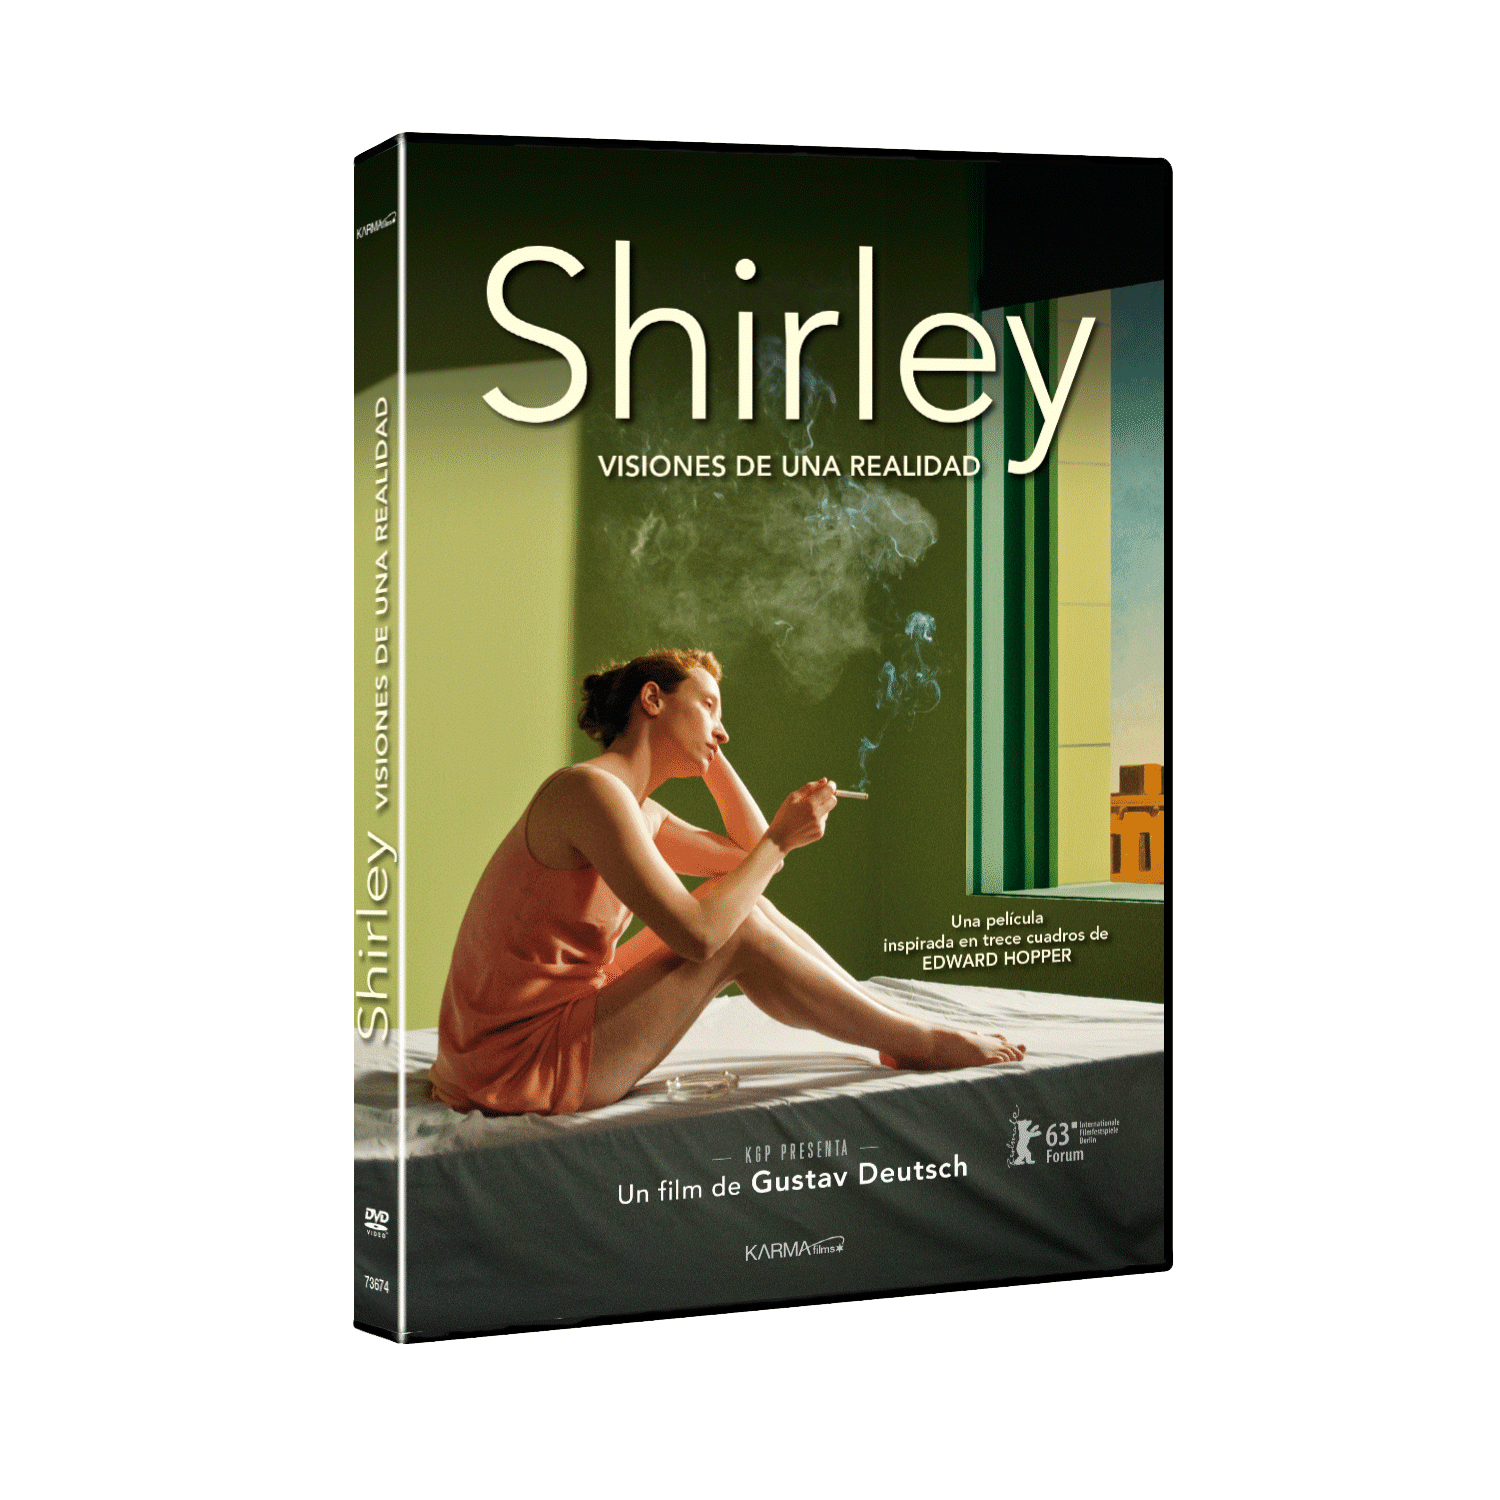 shirley_dvd